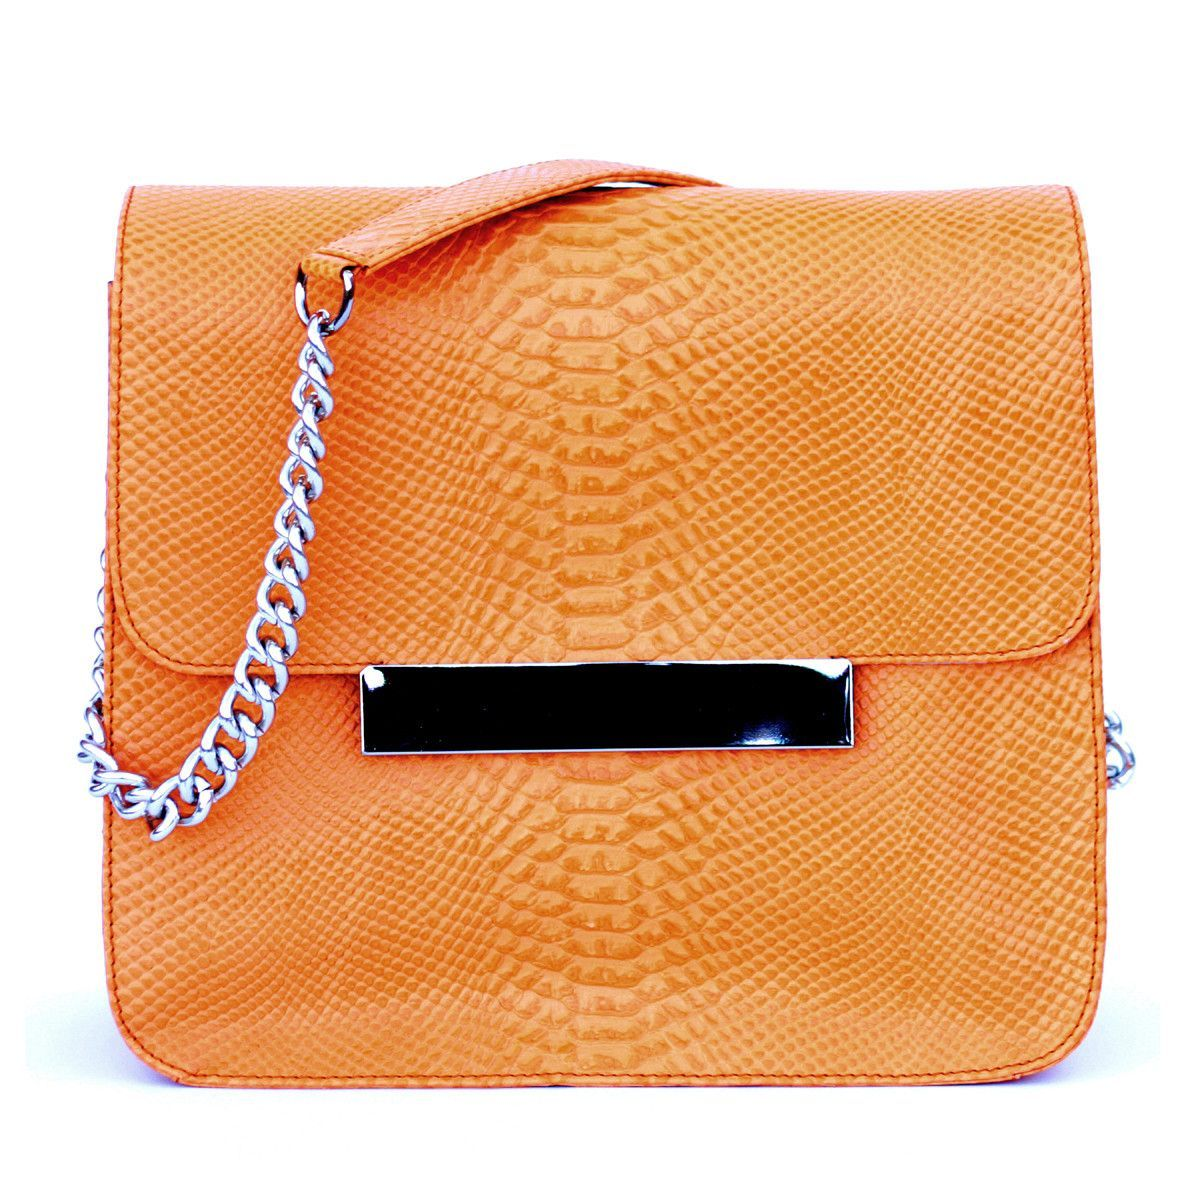 Frankie Crossbody in Burnt Orange